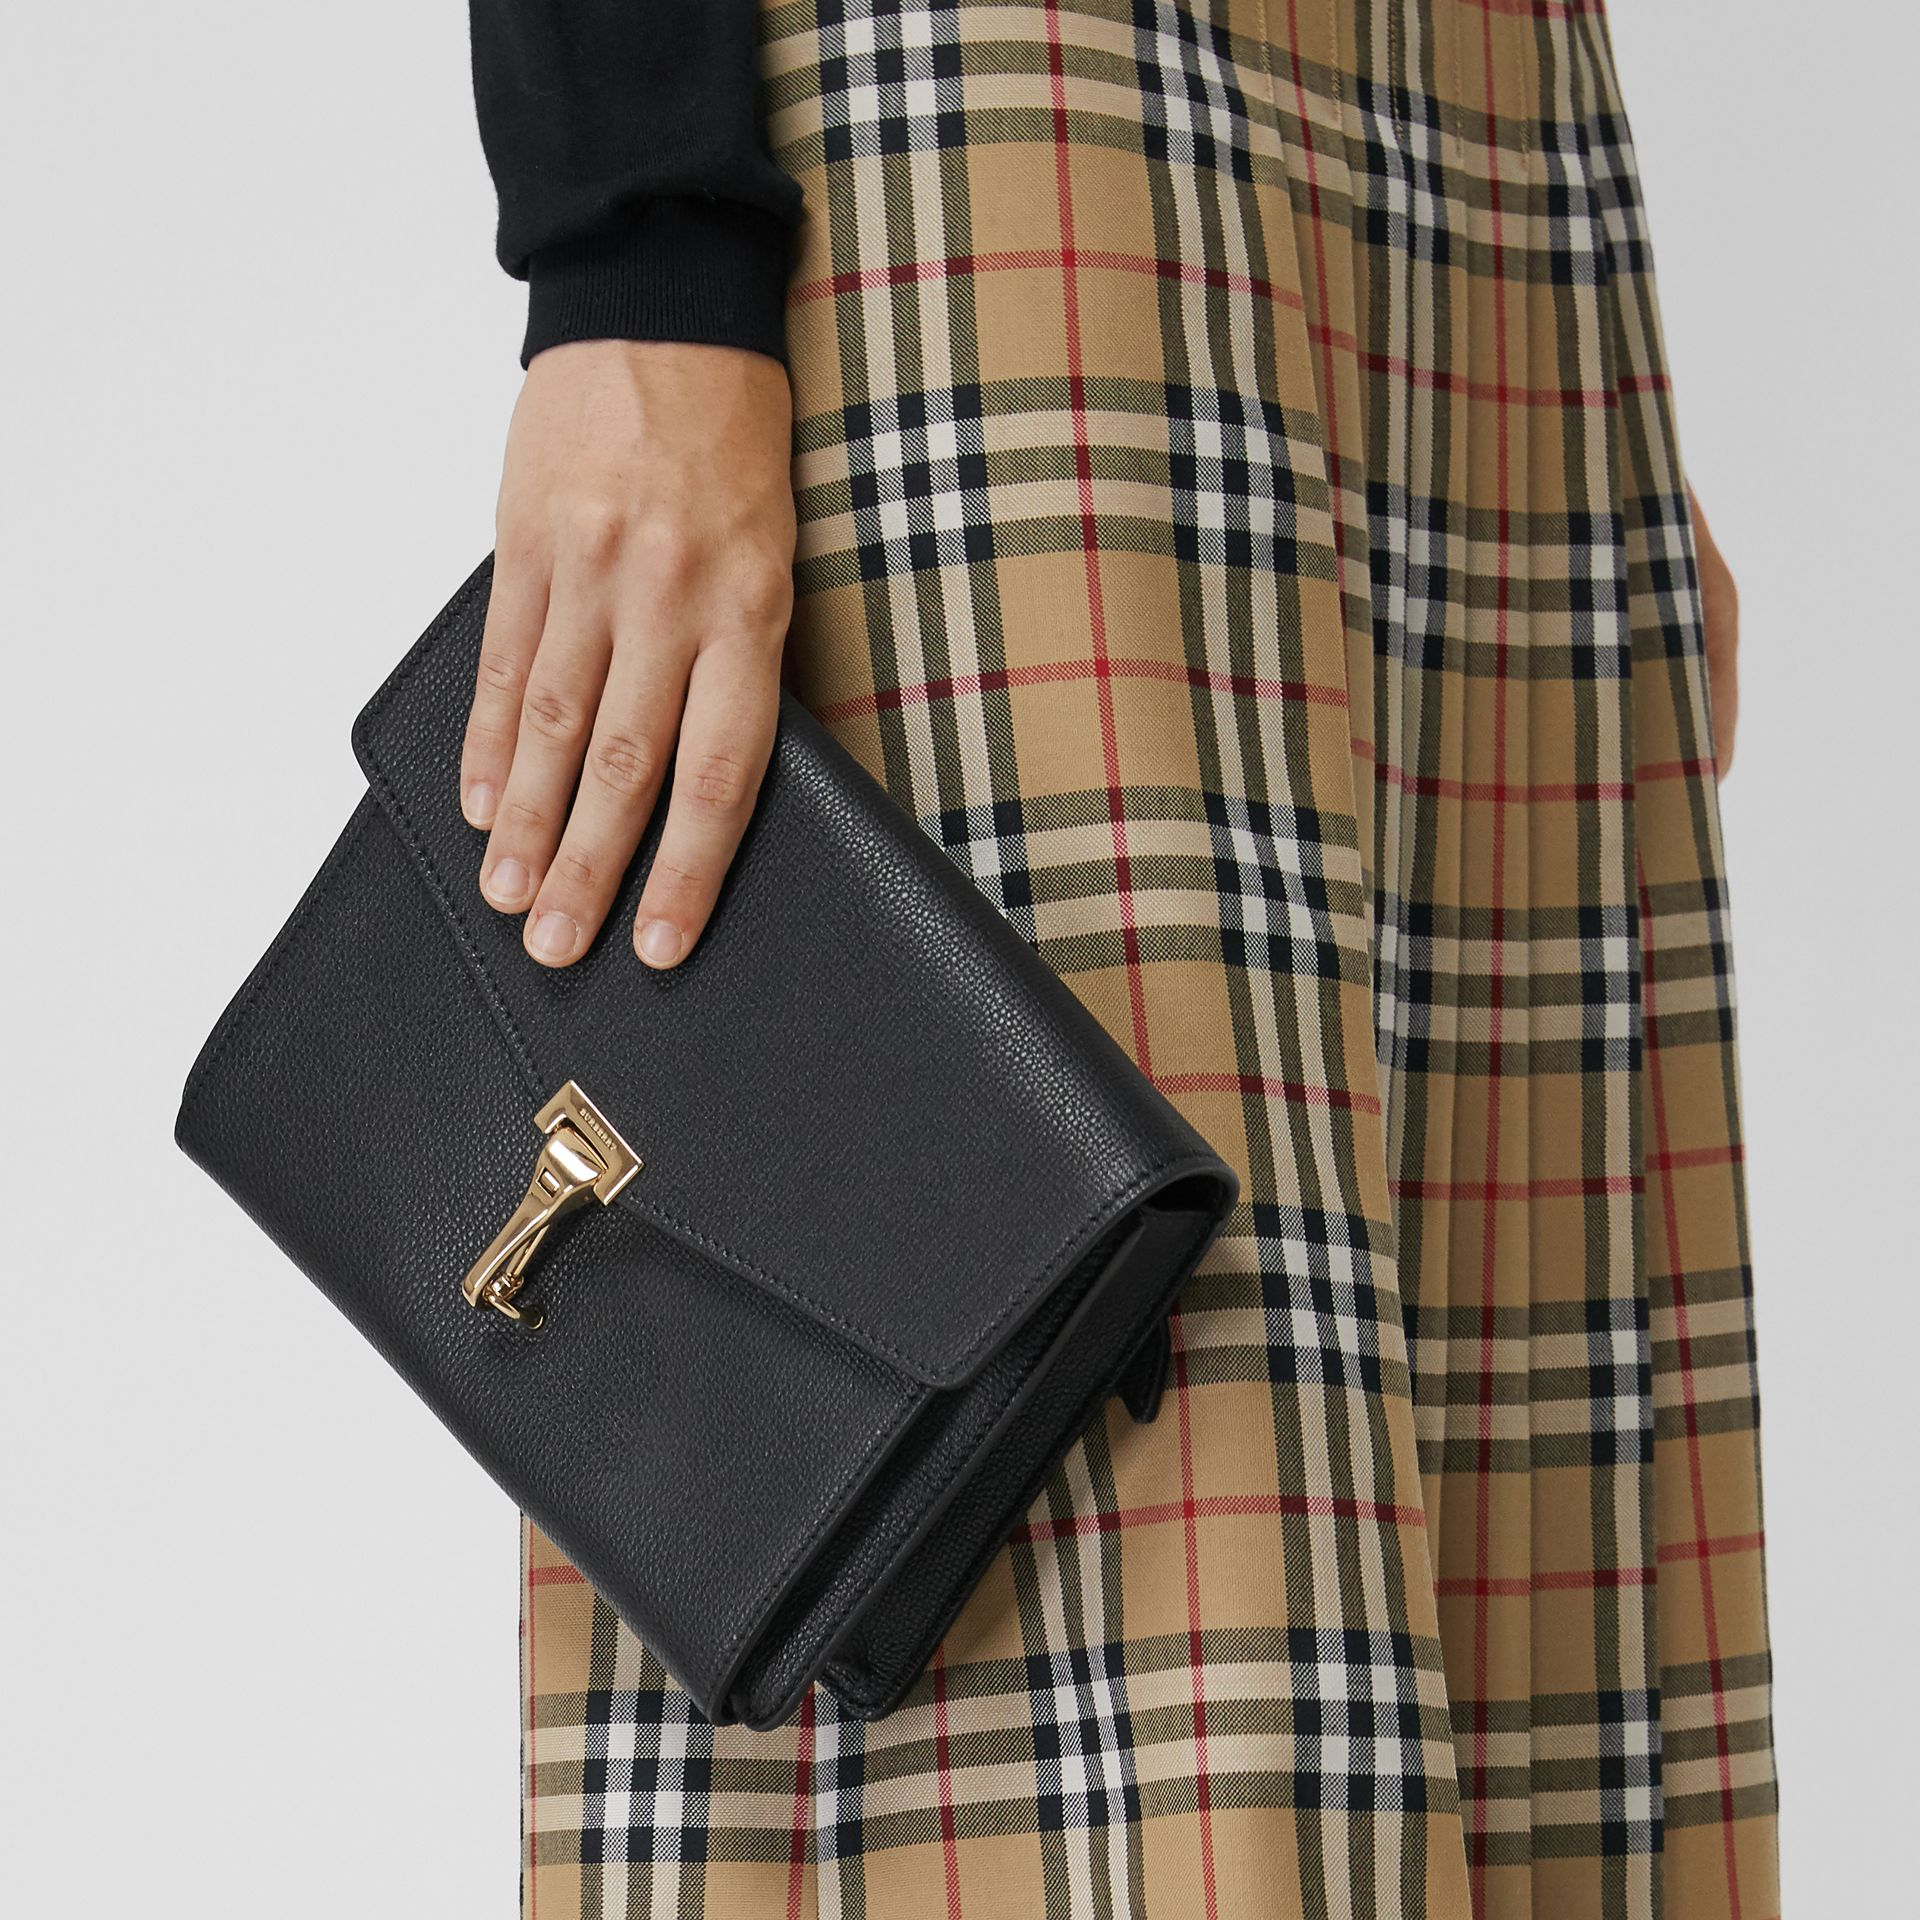 Small Leather Crossbody Bag in Black - Women | Burberry United Kingdom - gallery image 3